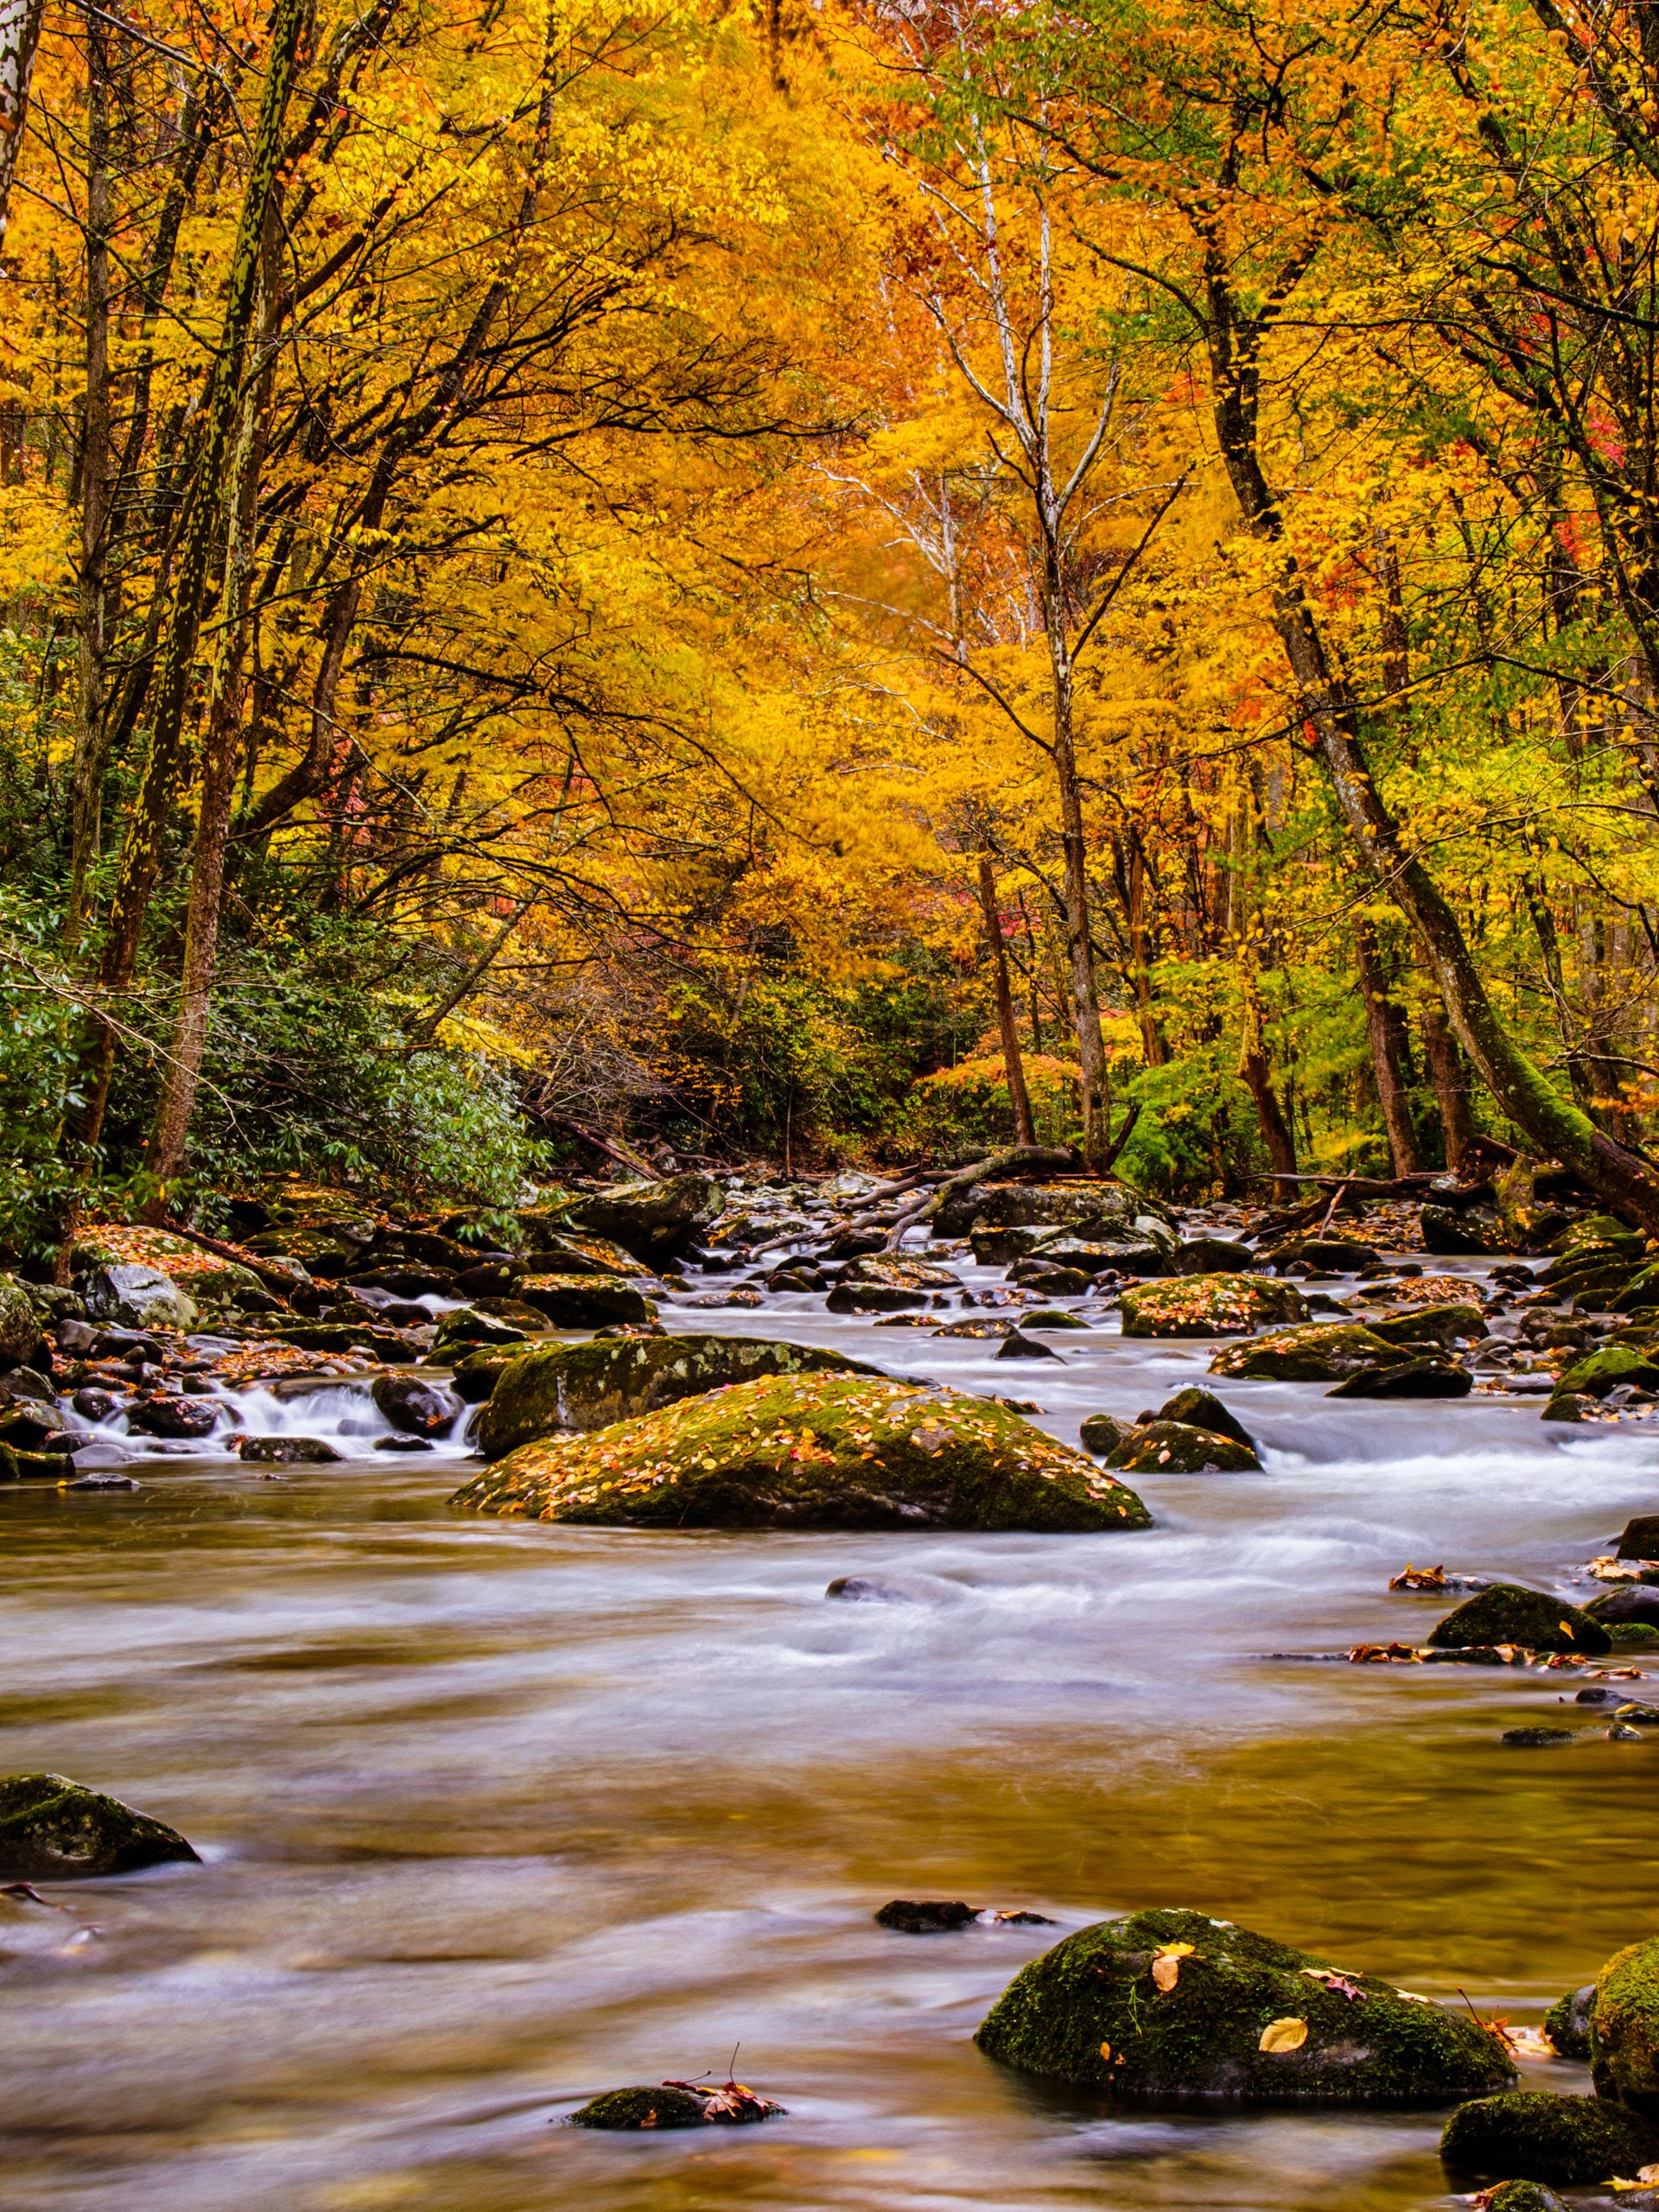 Nature Picture Of Autumn Forest In The Great Smoky Mountain National Park For Mobile Phones Wallpaper Hd Wallpapers Wallpapers Download High Resolution Wa Hd Nature Wallpapers Nature Pictures Beautiful Nature Wallpaper